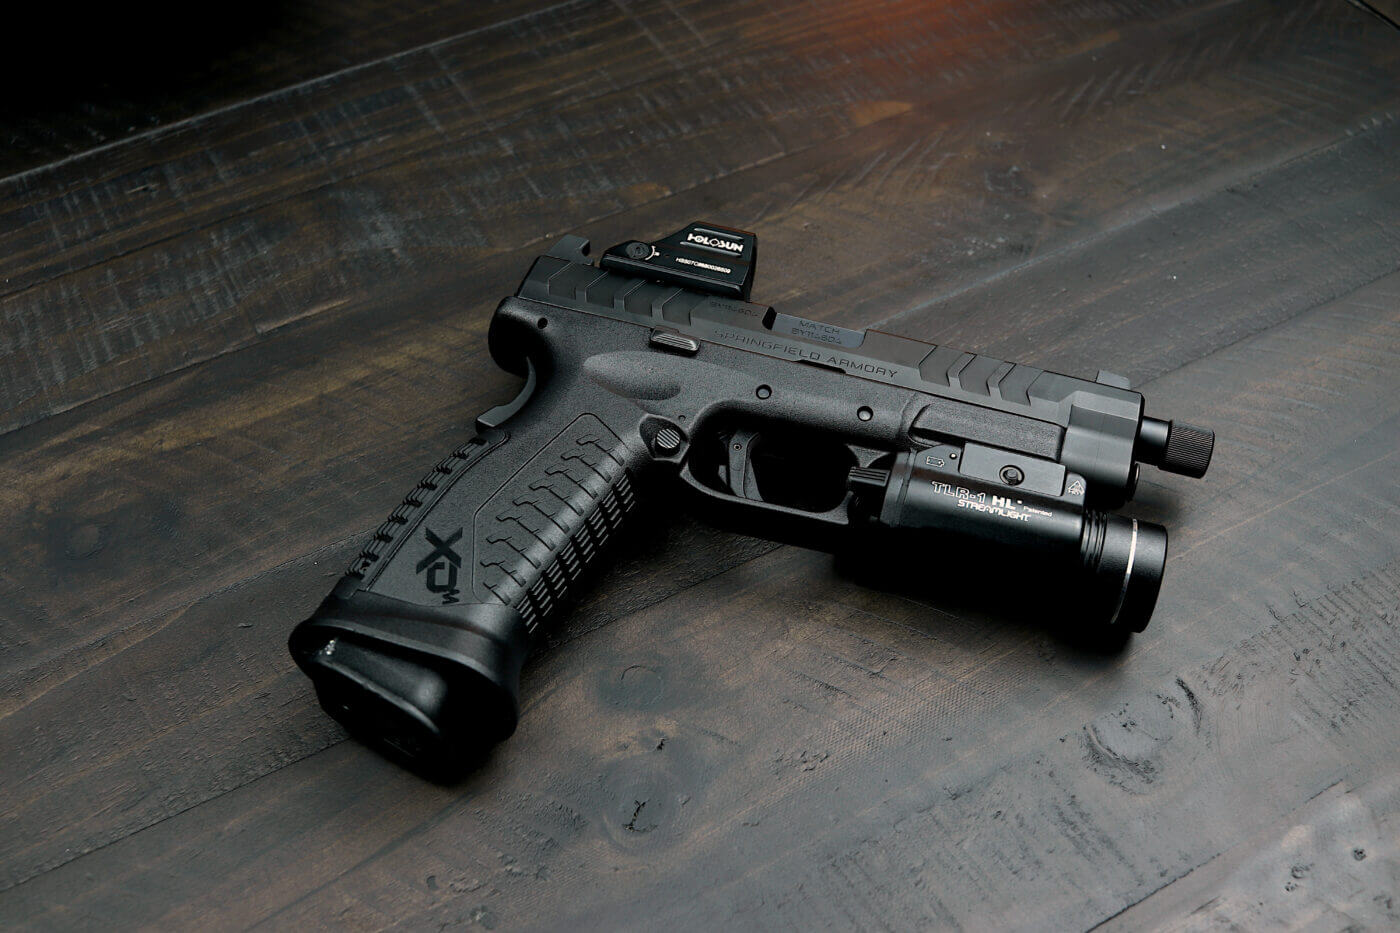 XD-M Elite Tactical OSP 9mm by Springfield Armory